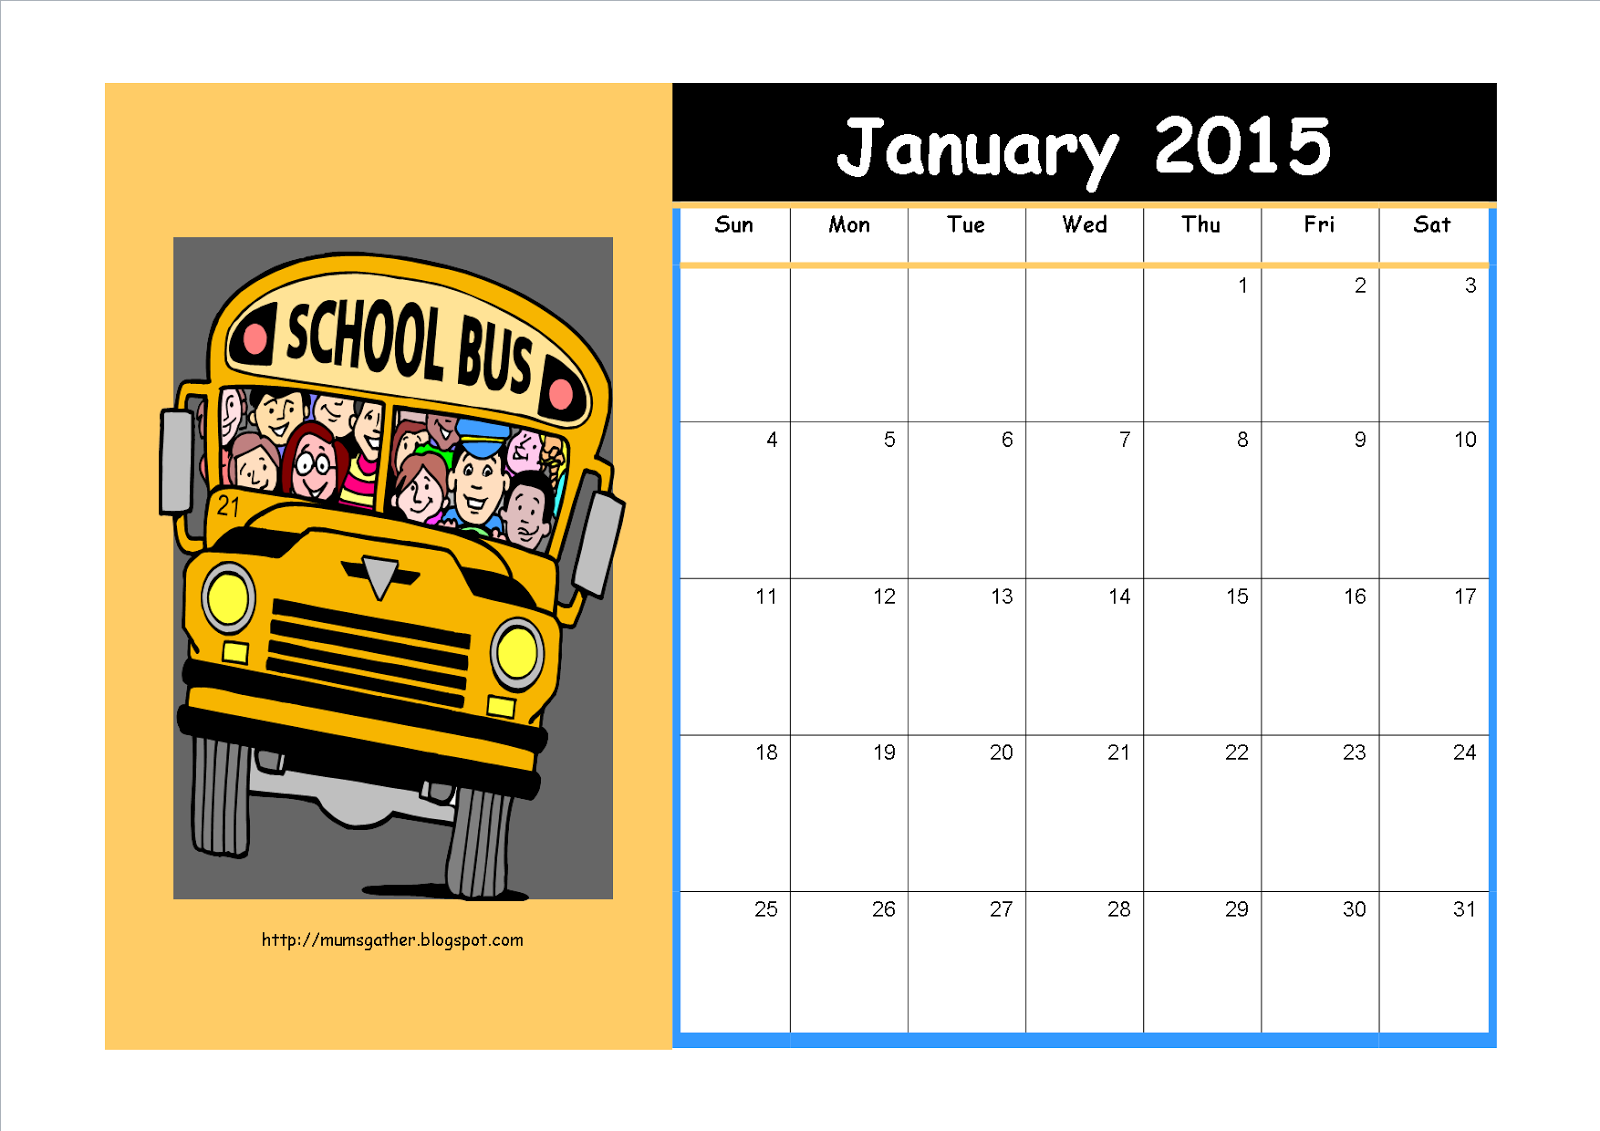 January 2015 Calendar For Kids